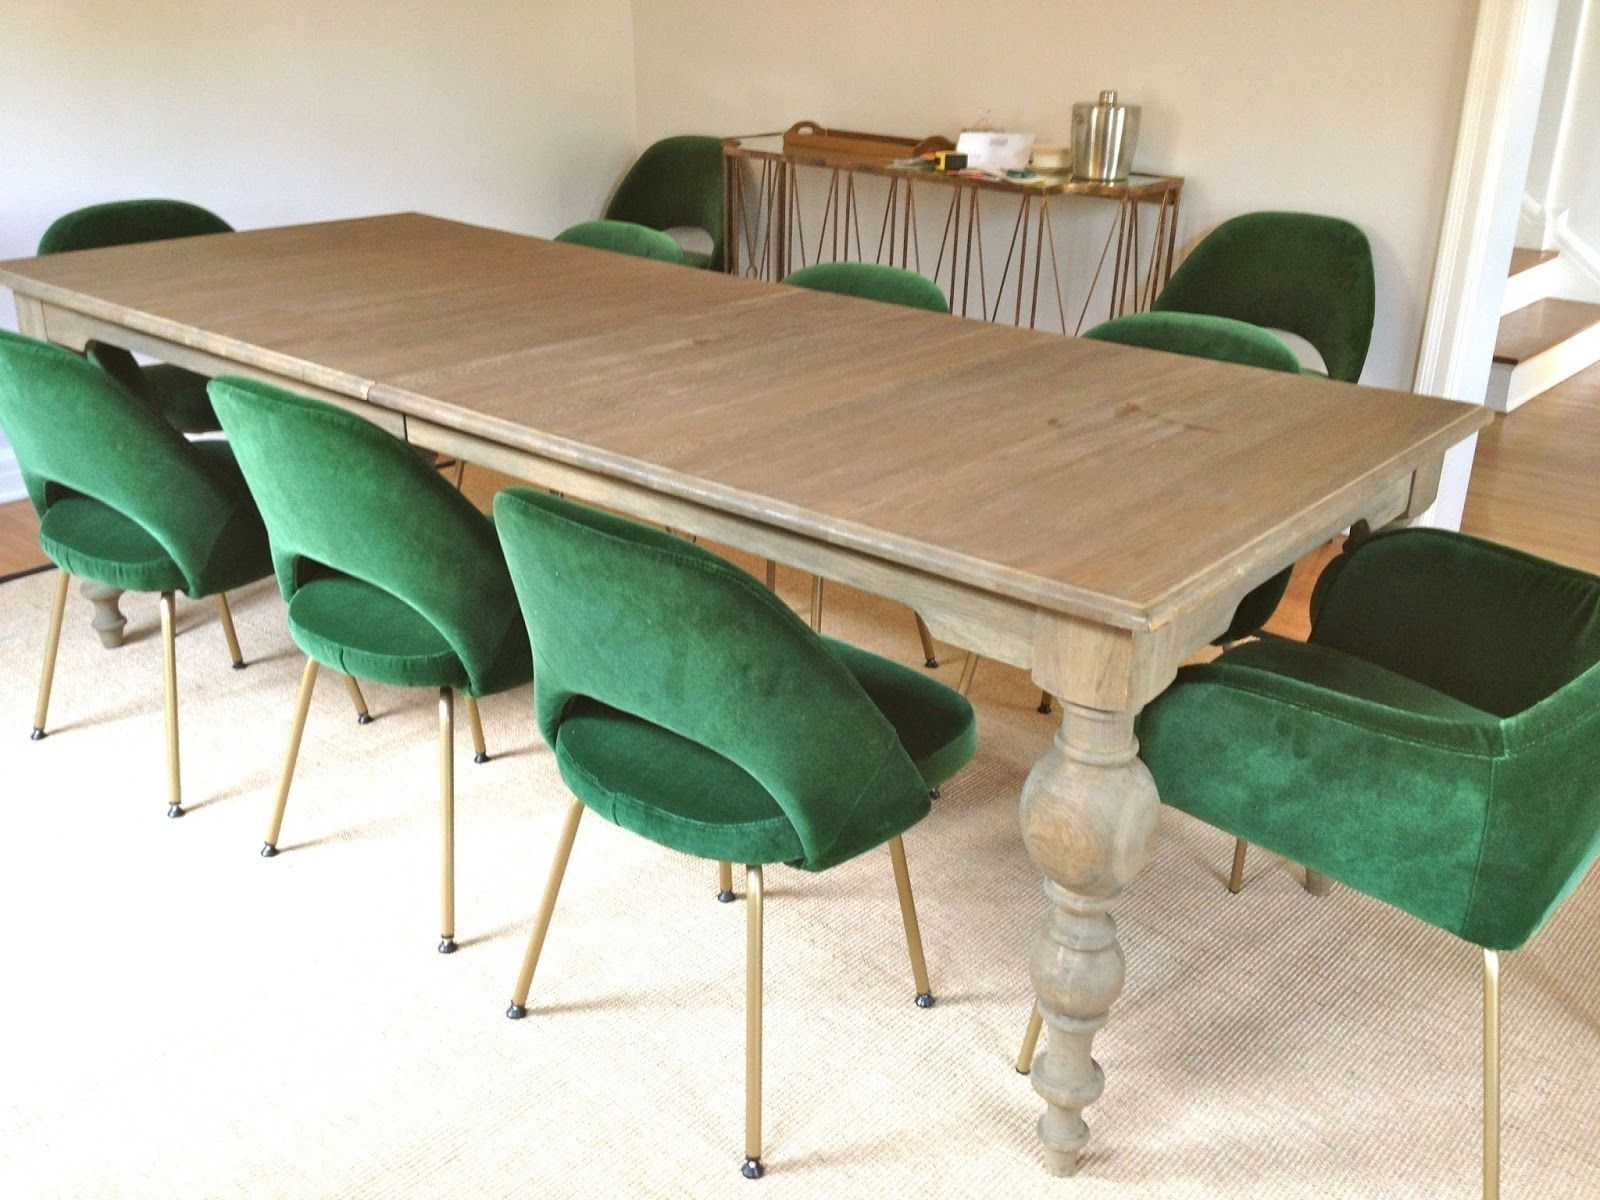 Inspirational Green Velvet Dining Chairs Dark Green Velvet Dining Chairs Green Velv Green Dining Chairs Saarinen Dining Chair Dining Room Chairs Upholstered